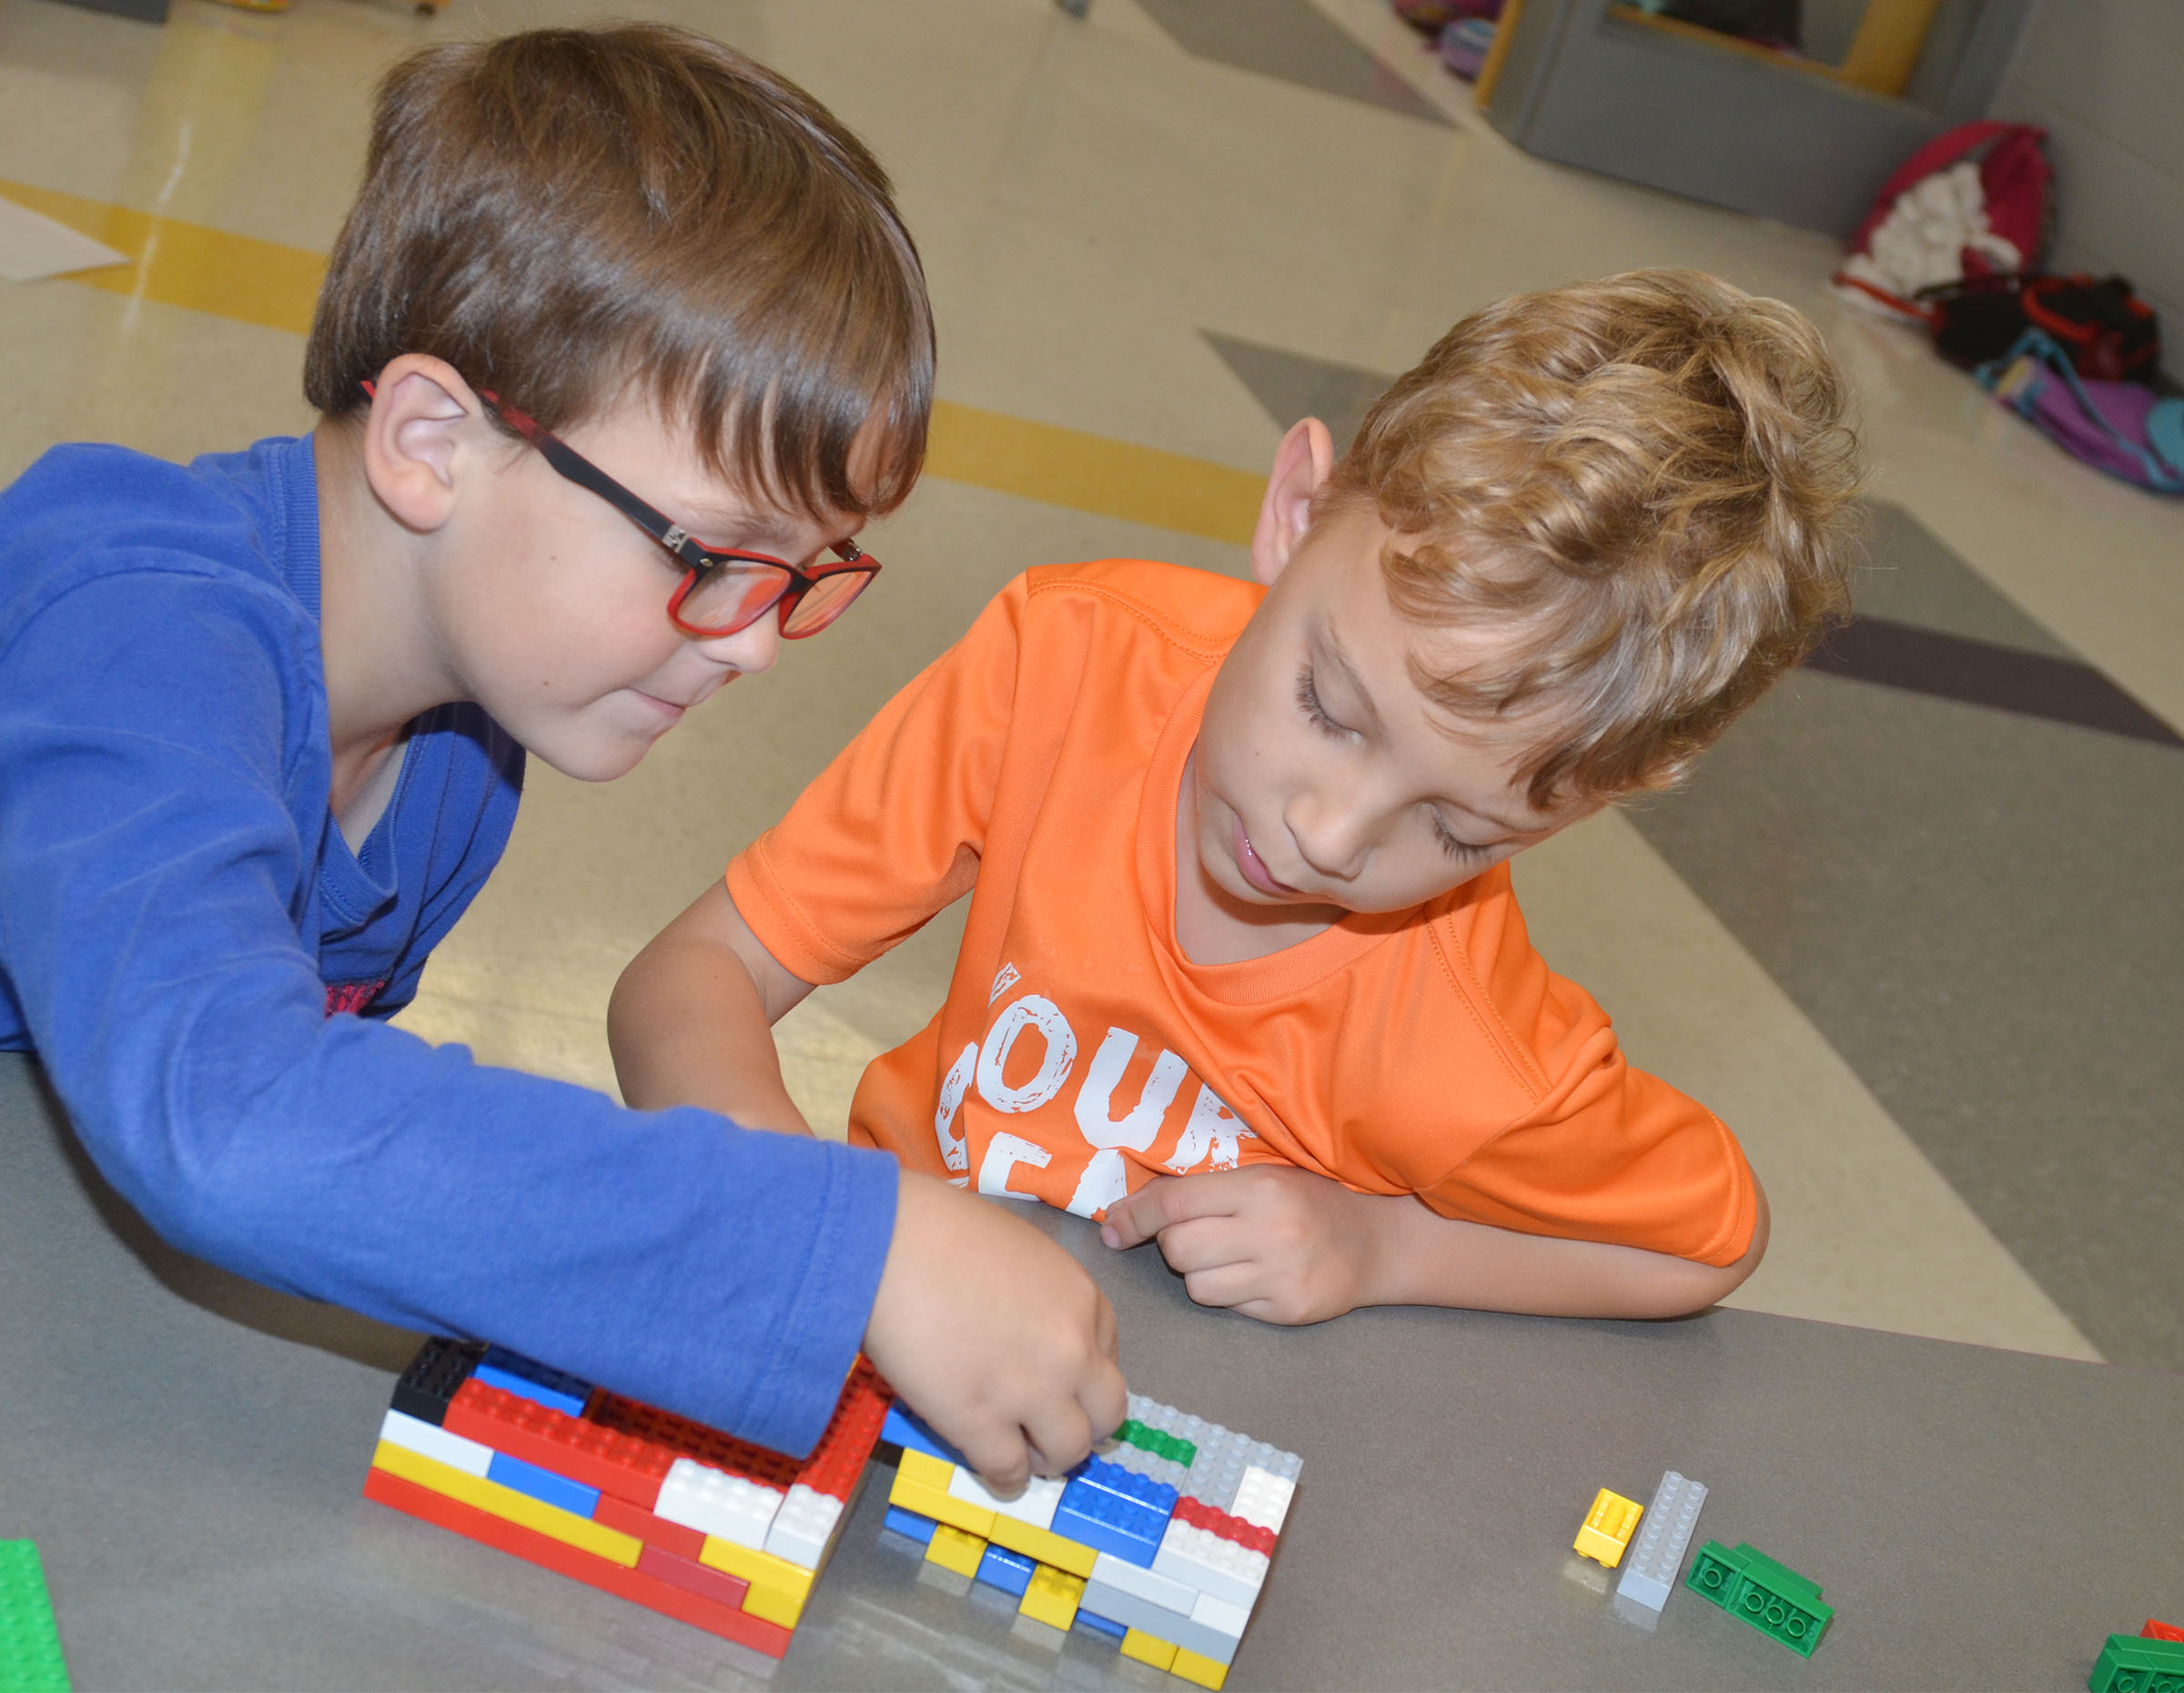 CES first-graders Brendan Martin, at left, and Gabe Prior build together with Legos.